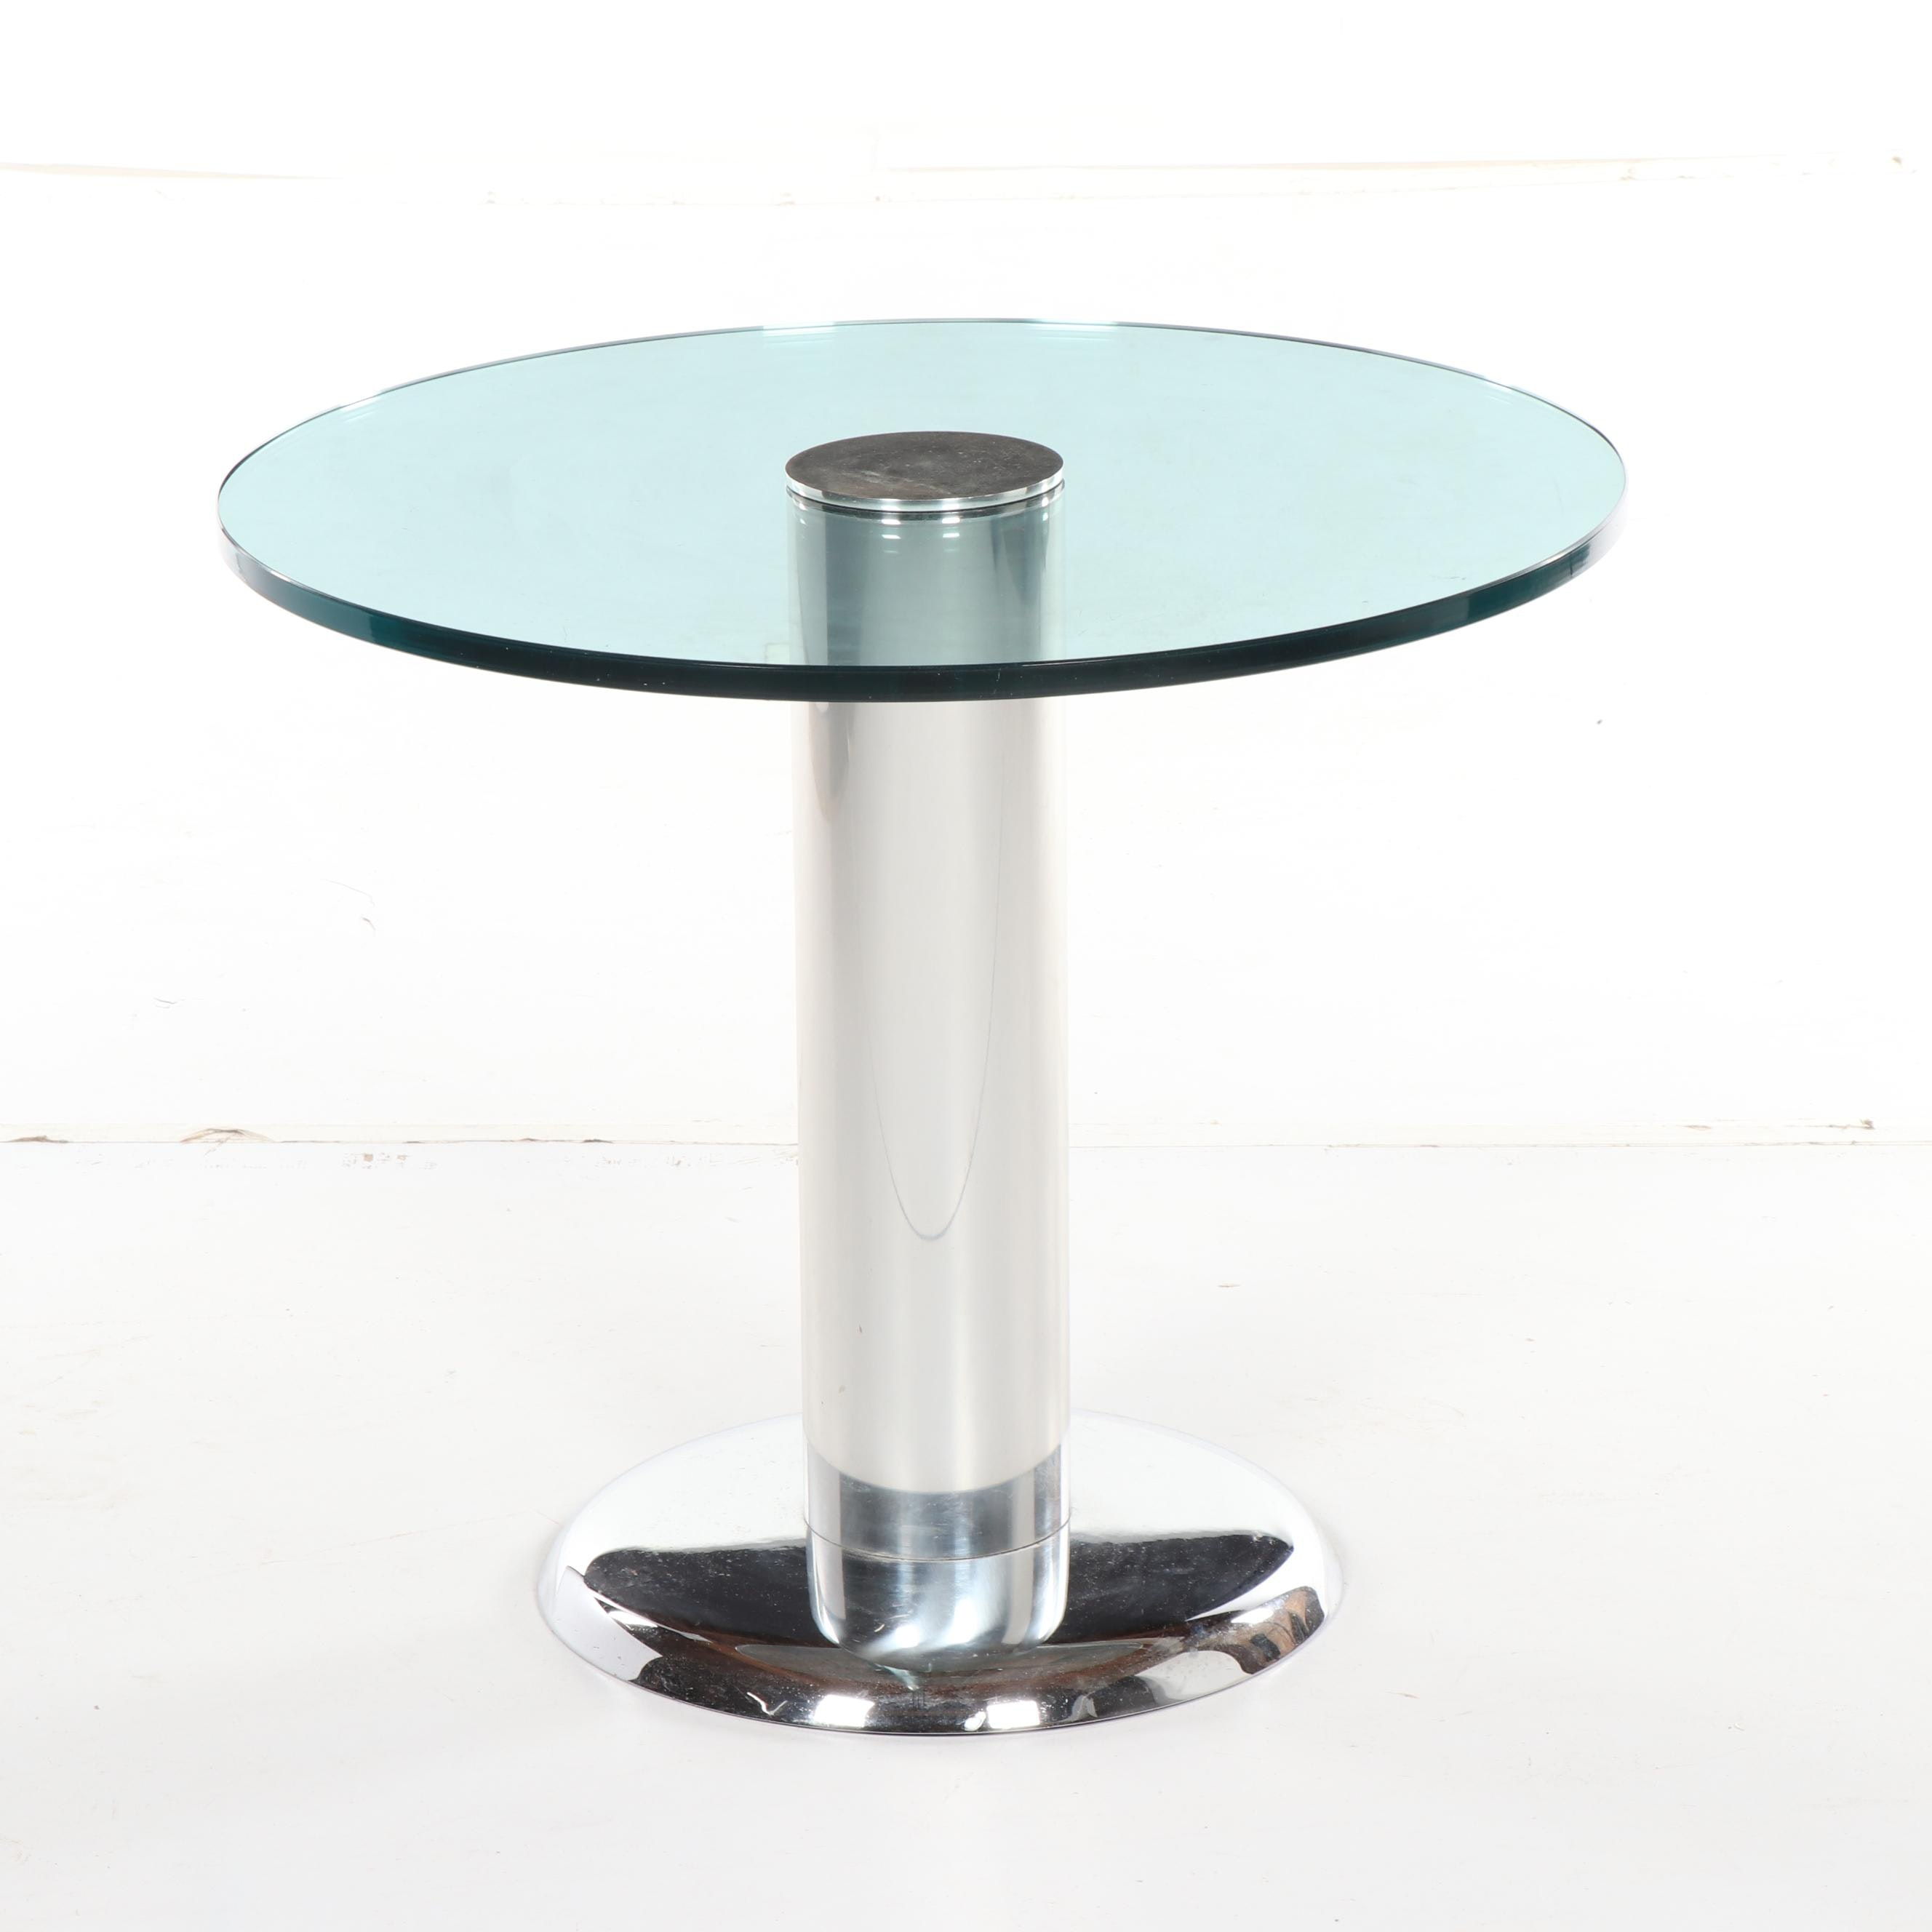 Mid Century Modern Style Glass and Chrome Table, 21st Century